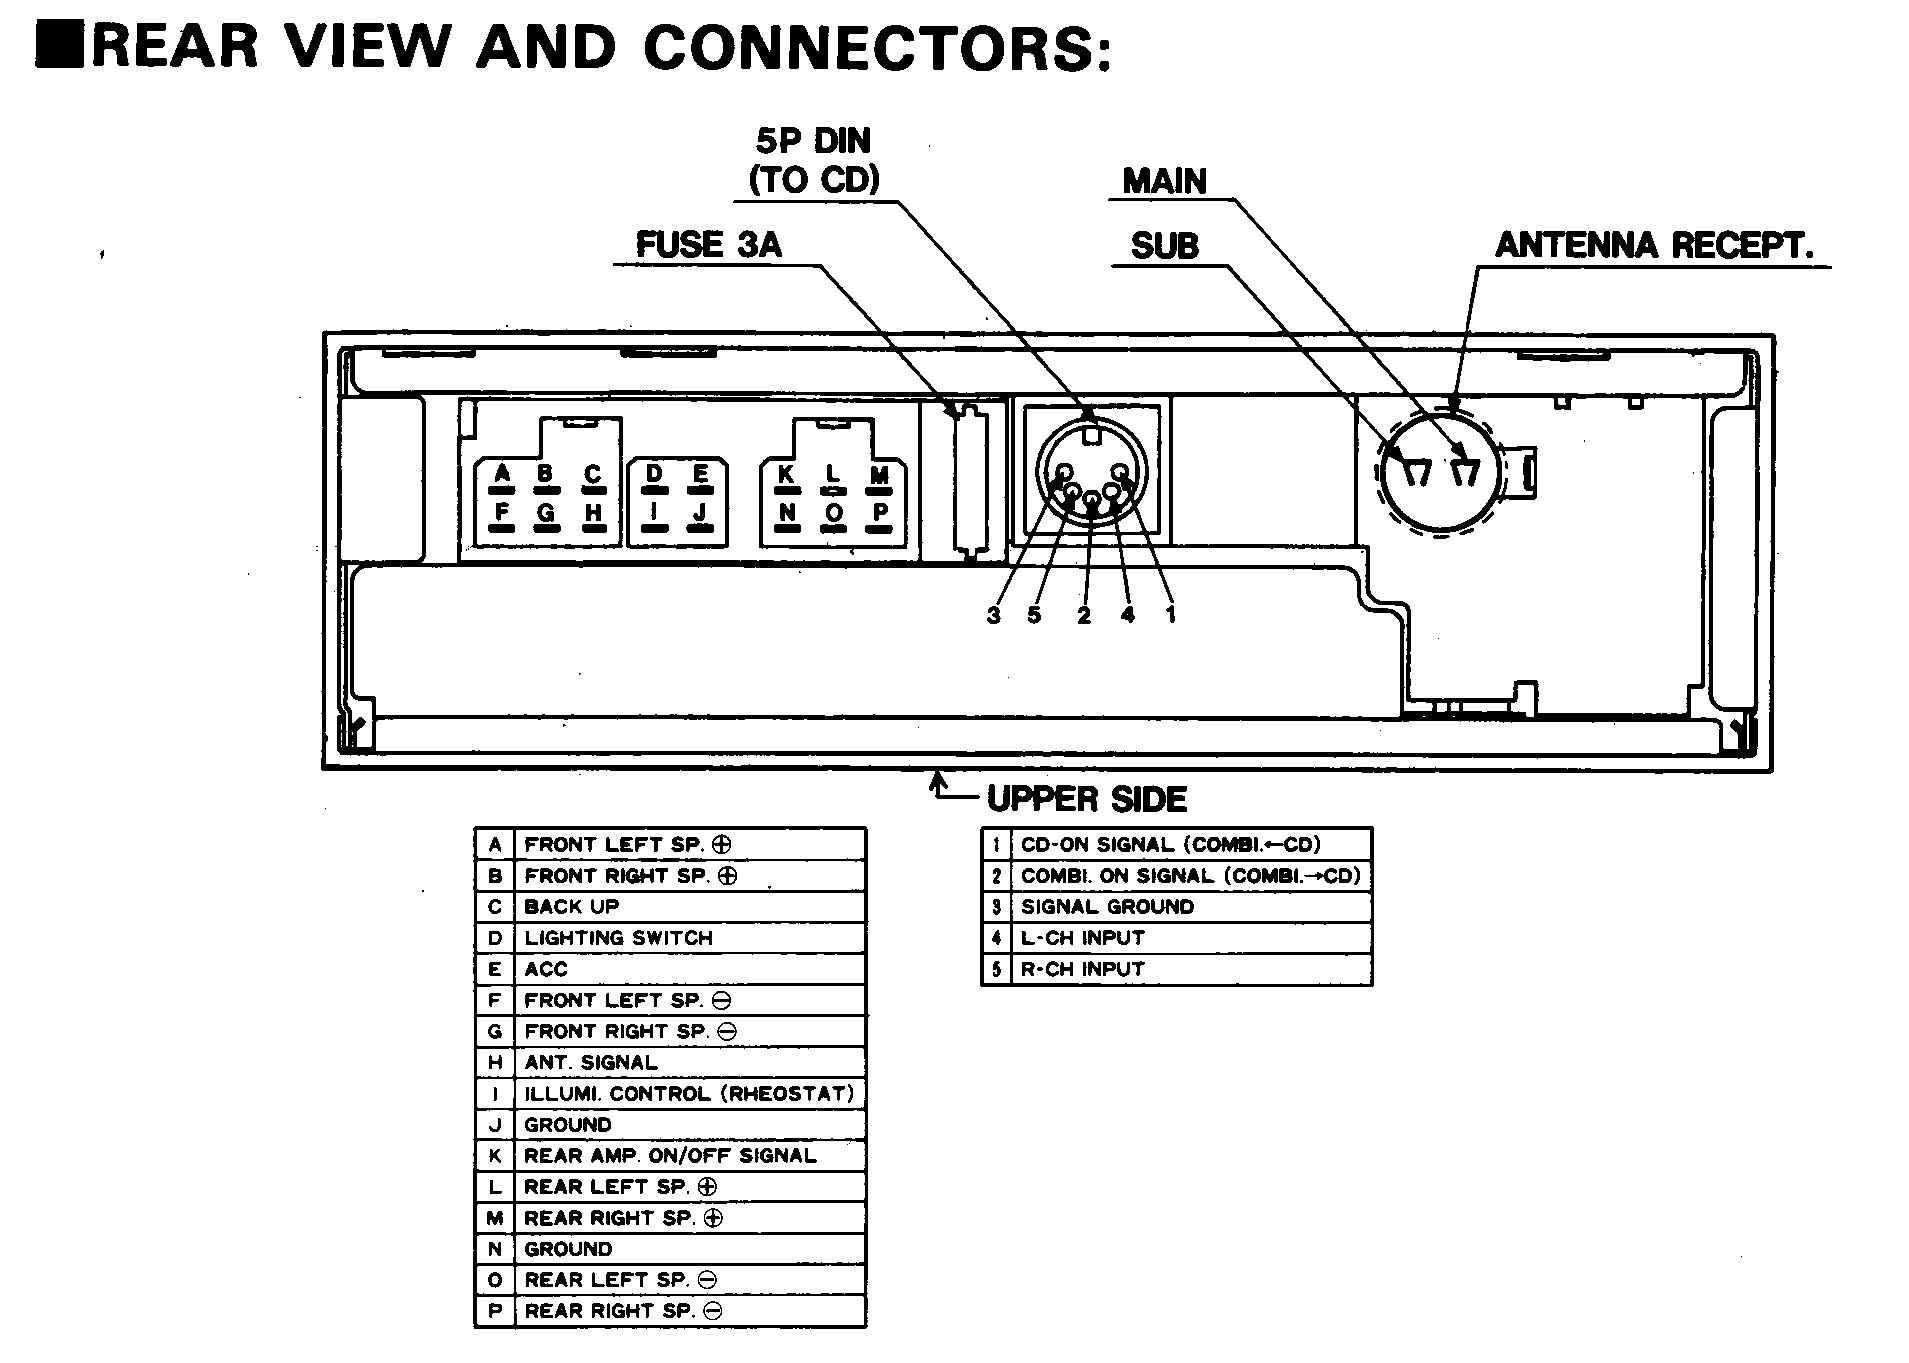 old fashioned car stereo amp wiring diagram composition simple rh littleforestgirl net Ford Stereo Wiring Diagrams Car Stereo Color Wiring Diagram